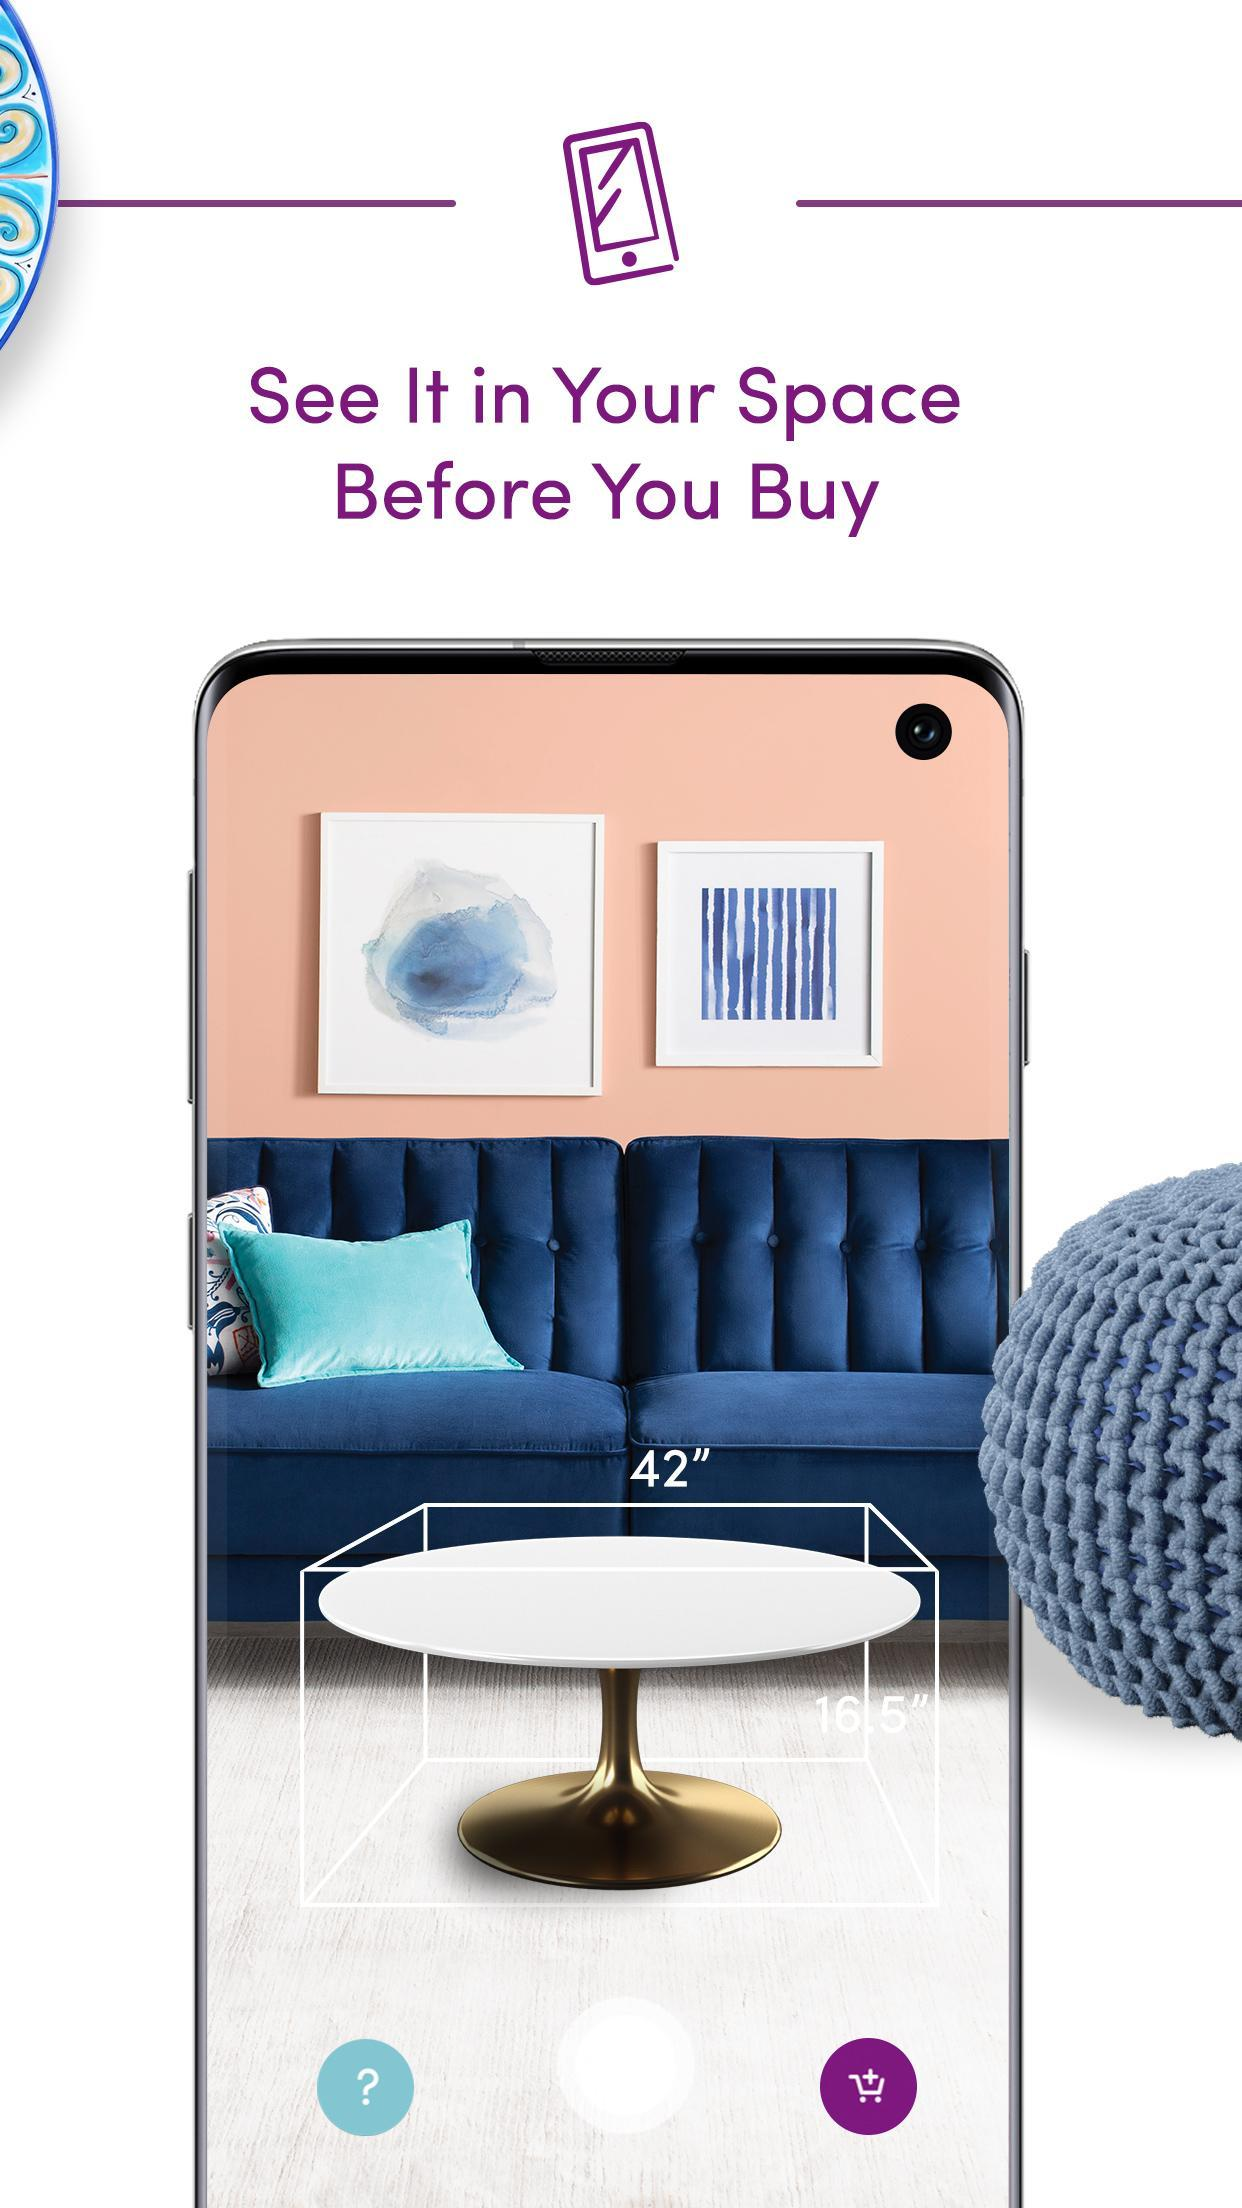 Wayfair Shop All Things Home 5.2.4 Screenshot 3